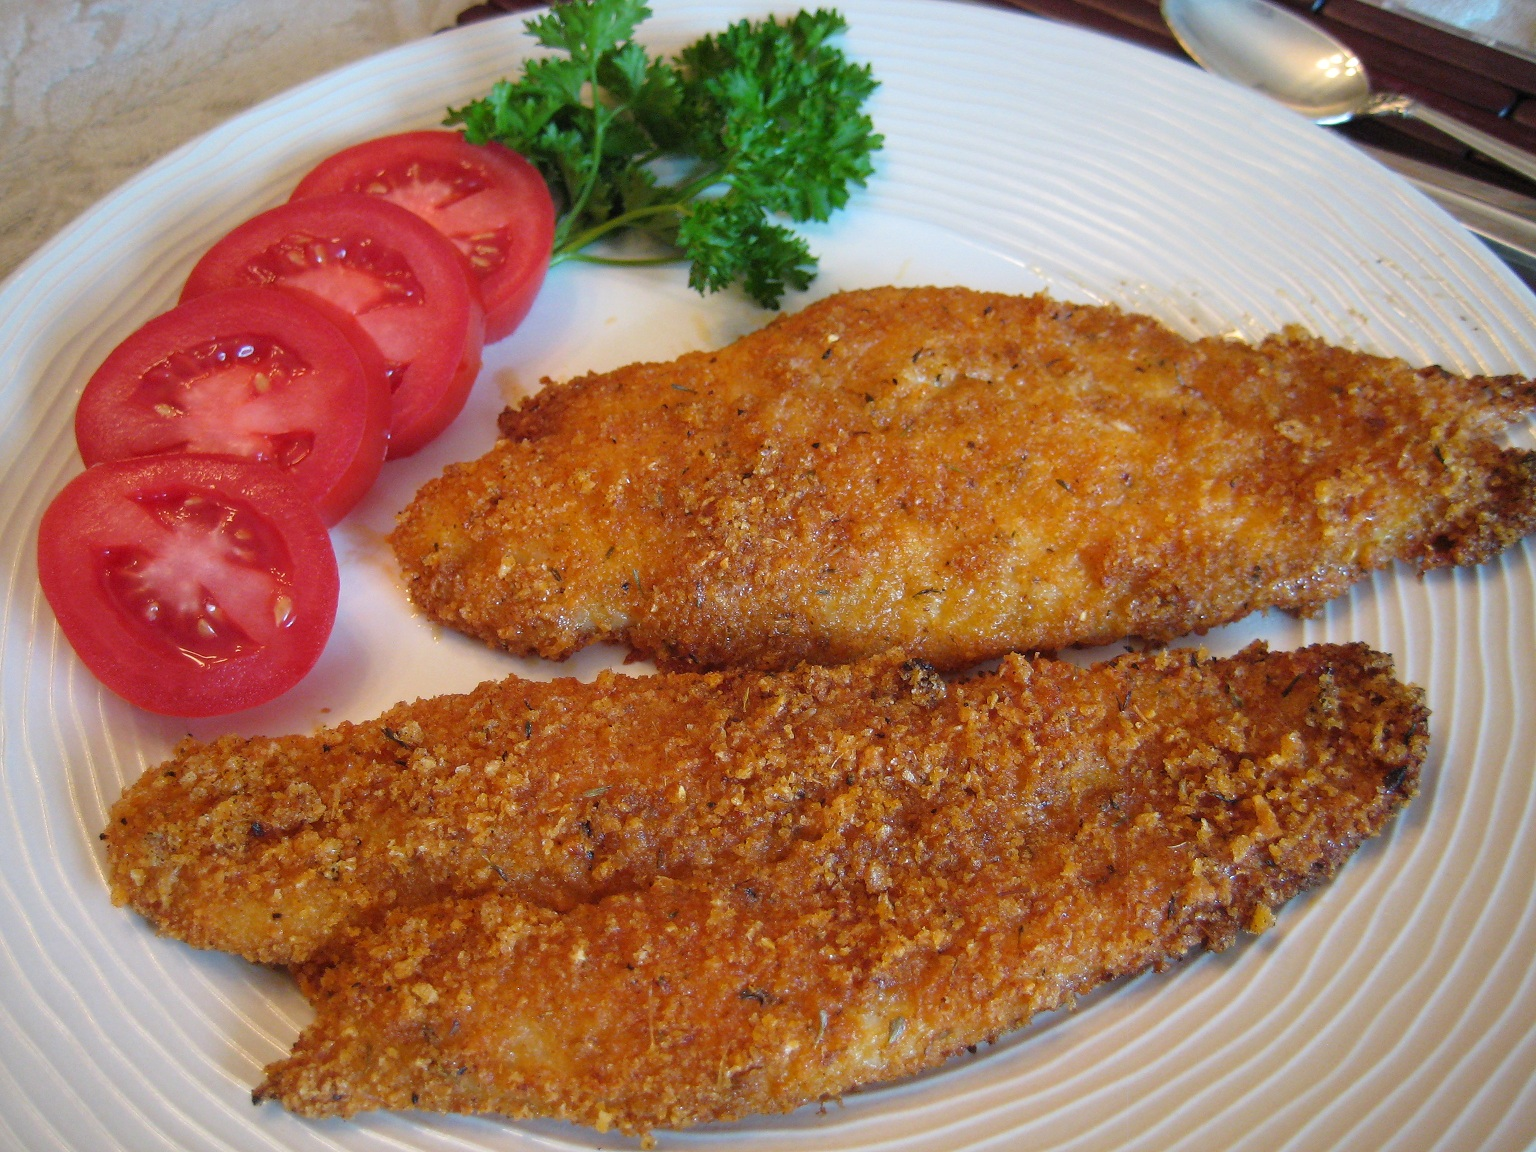 ... fried fish i would recommend any white fish for frying my fish of